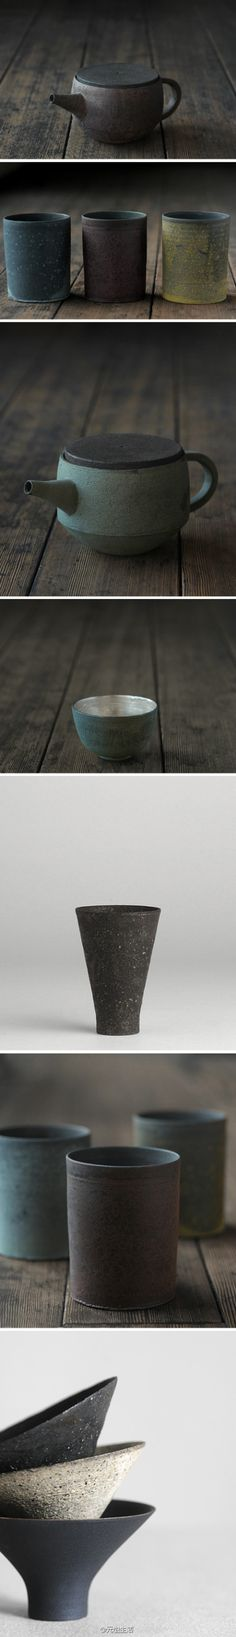 "I love the simplicity of these pieces, yet the richness... ultimately, ""less is more""."